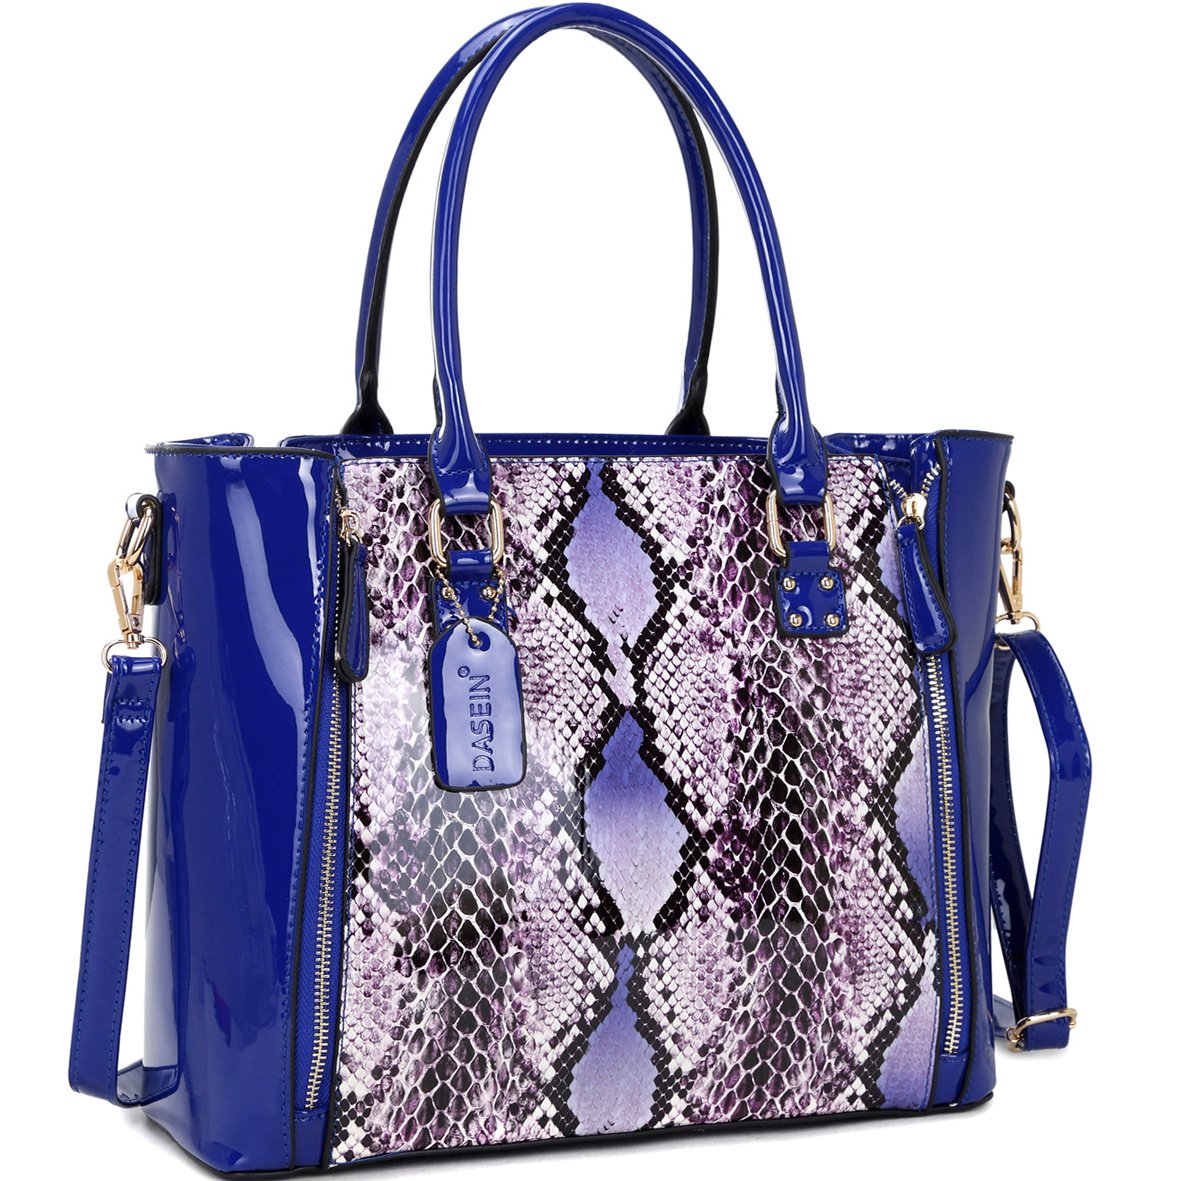 Dasein® Patent Leather Zipper Sides with Snakeskin Detail Satchel